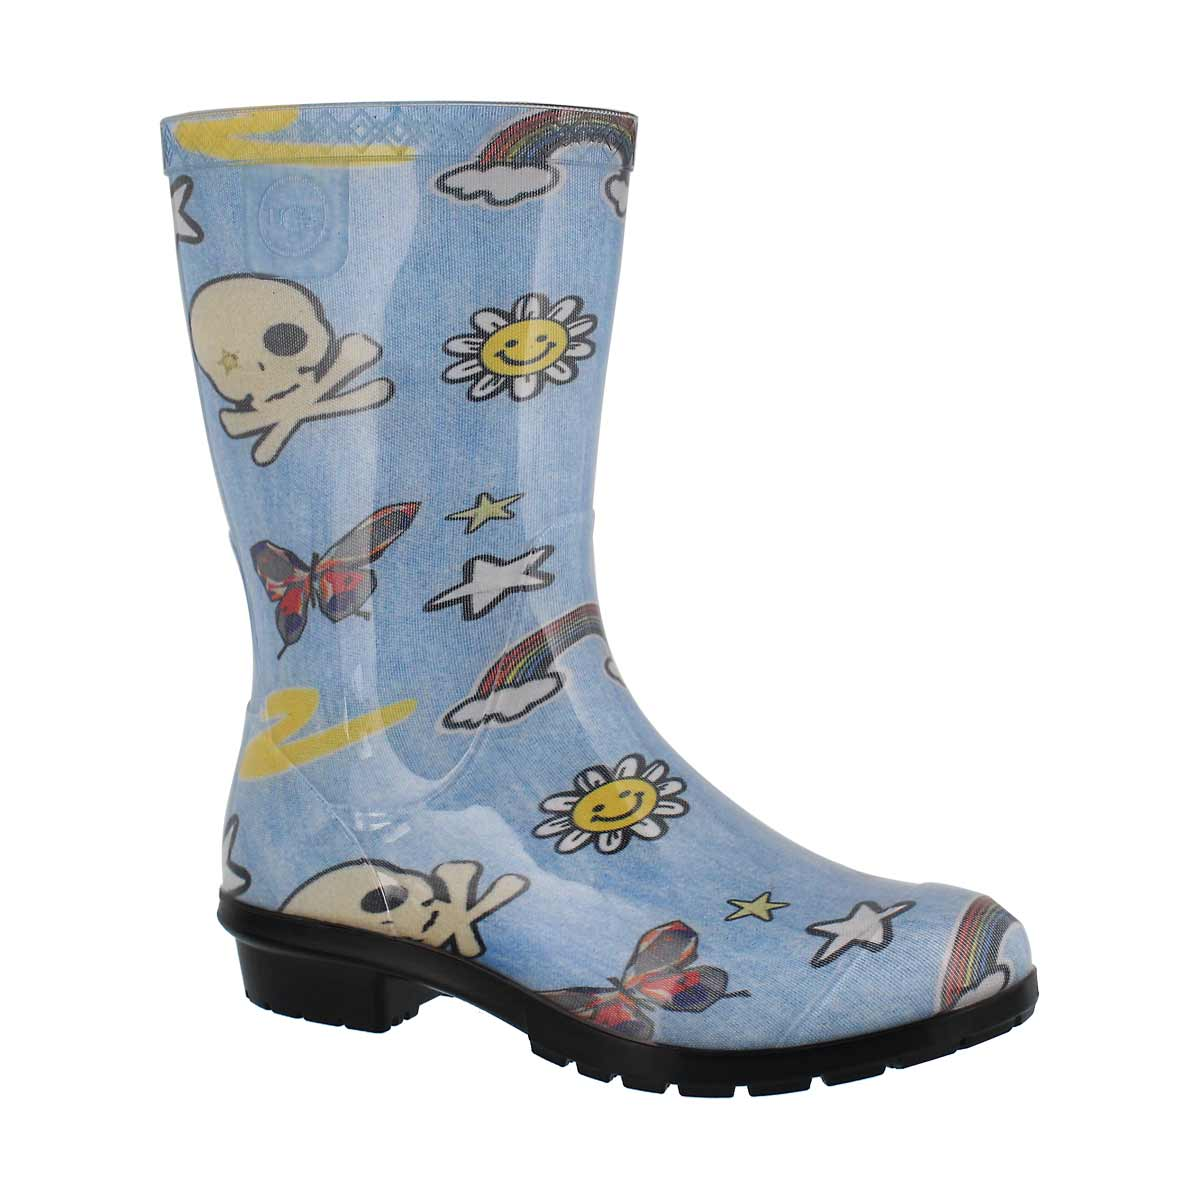 Kids' RAANA PATCHES denim multi wtpf rain boots